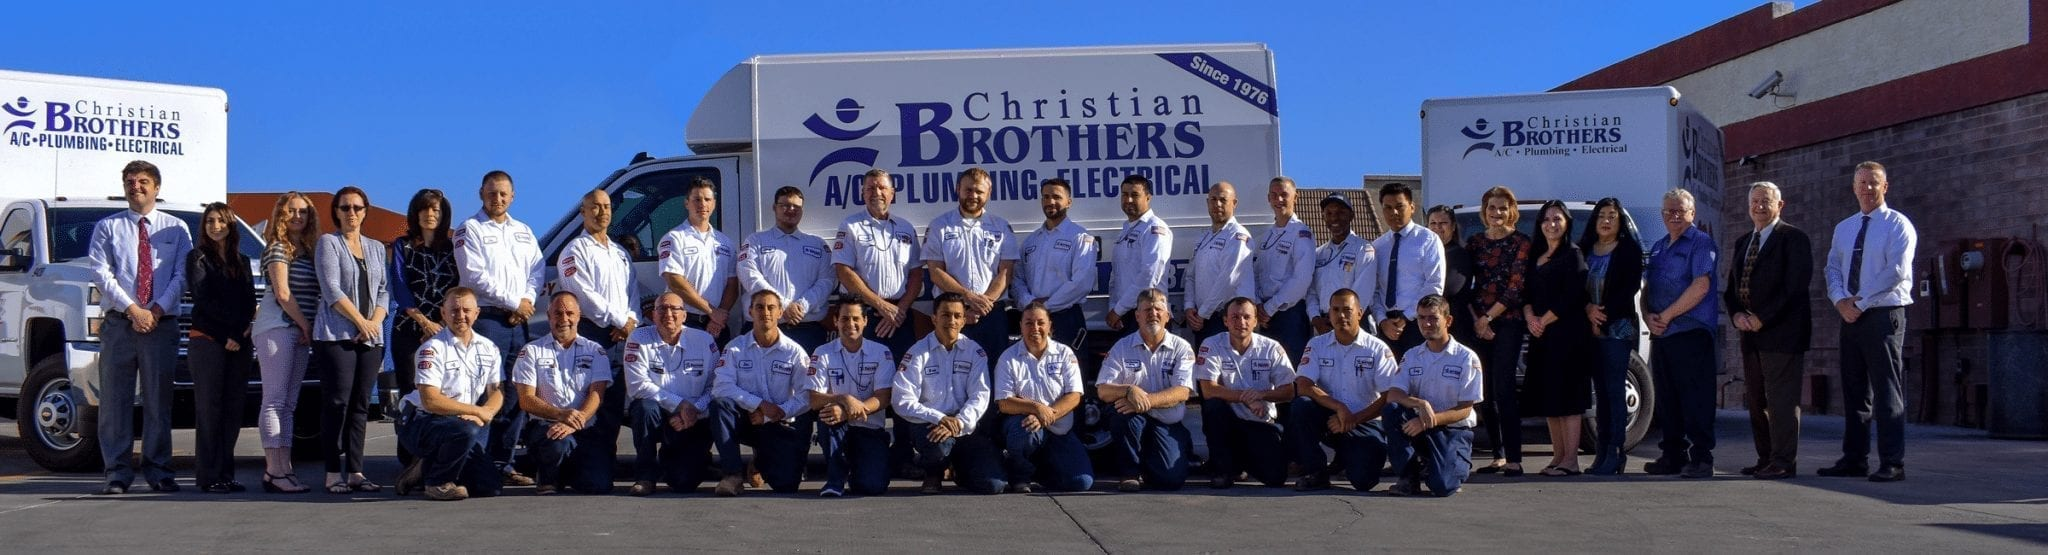 Plumbing Air Conditioning Electrical Repair: Christian Brothers